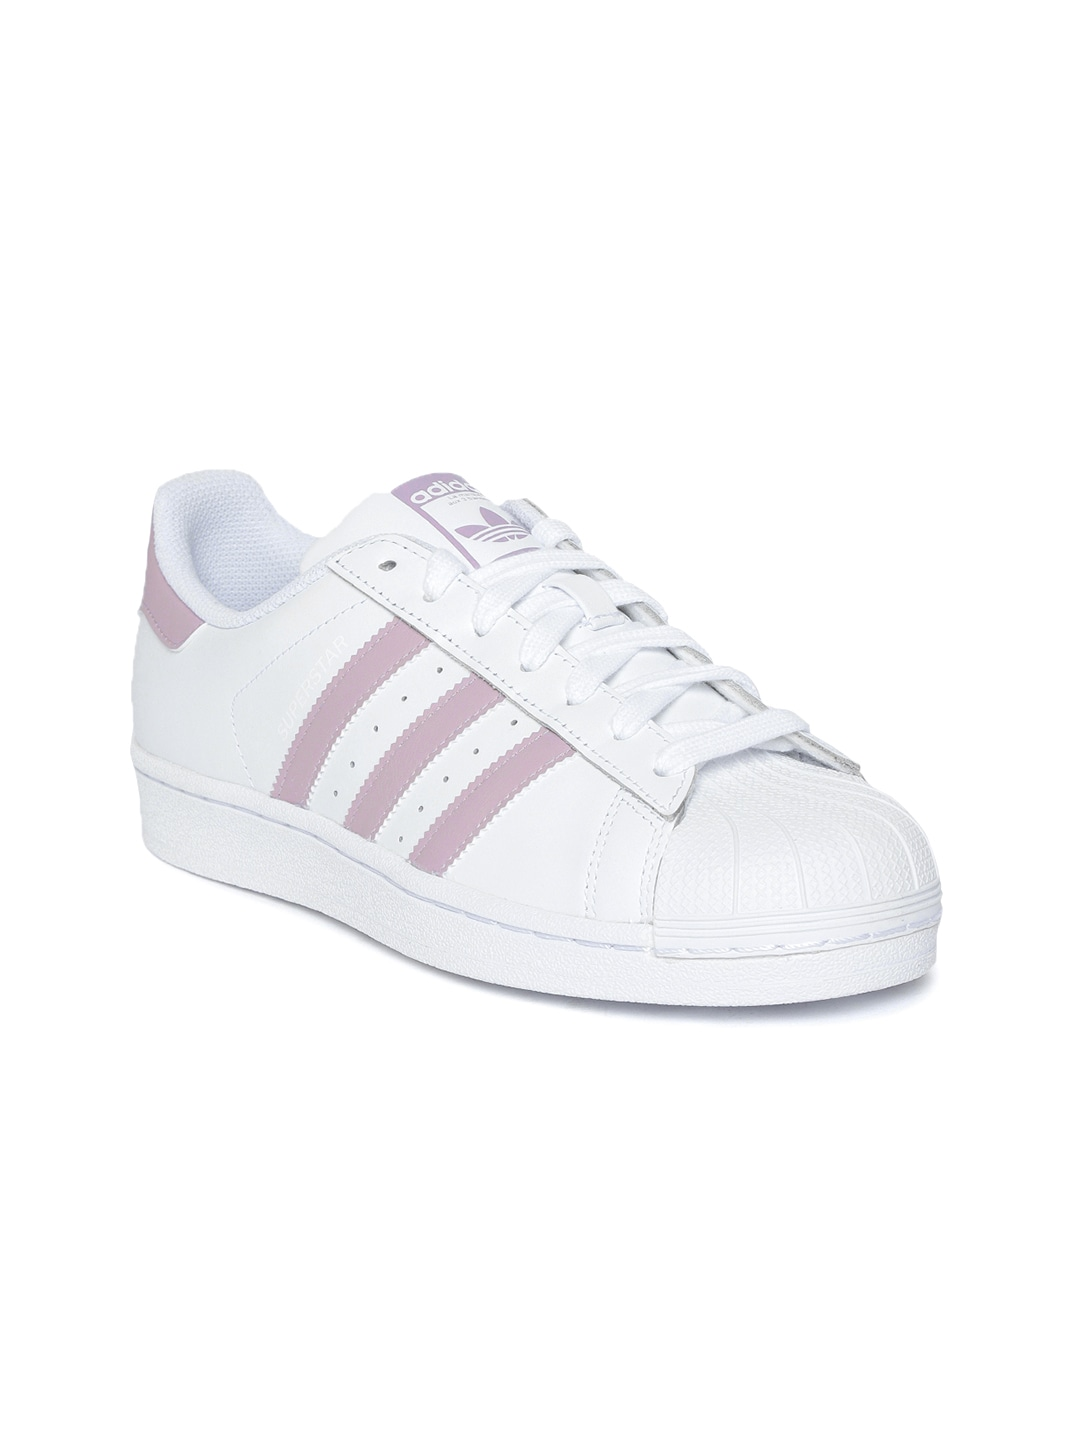 watch c97a3 81e40 Adidas Originals - Buy Adidas Originals Products Online   Myntra